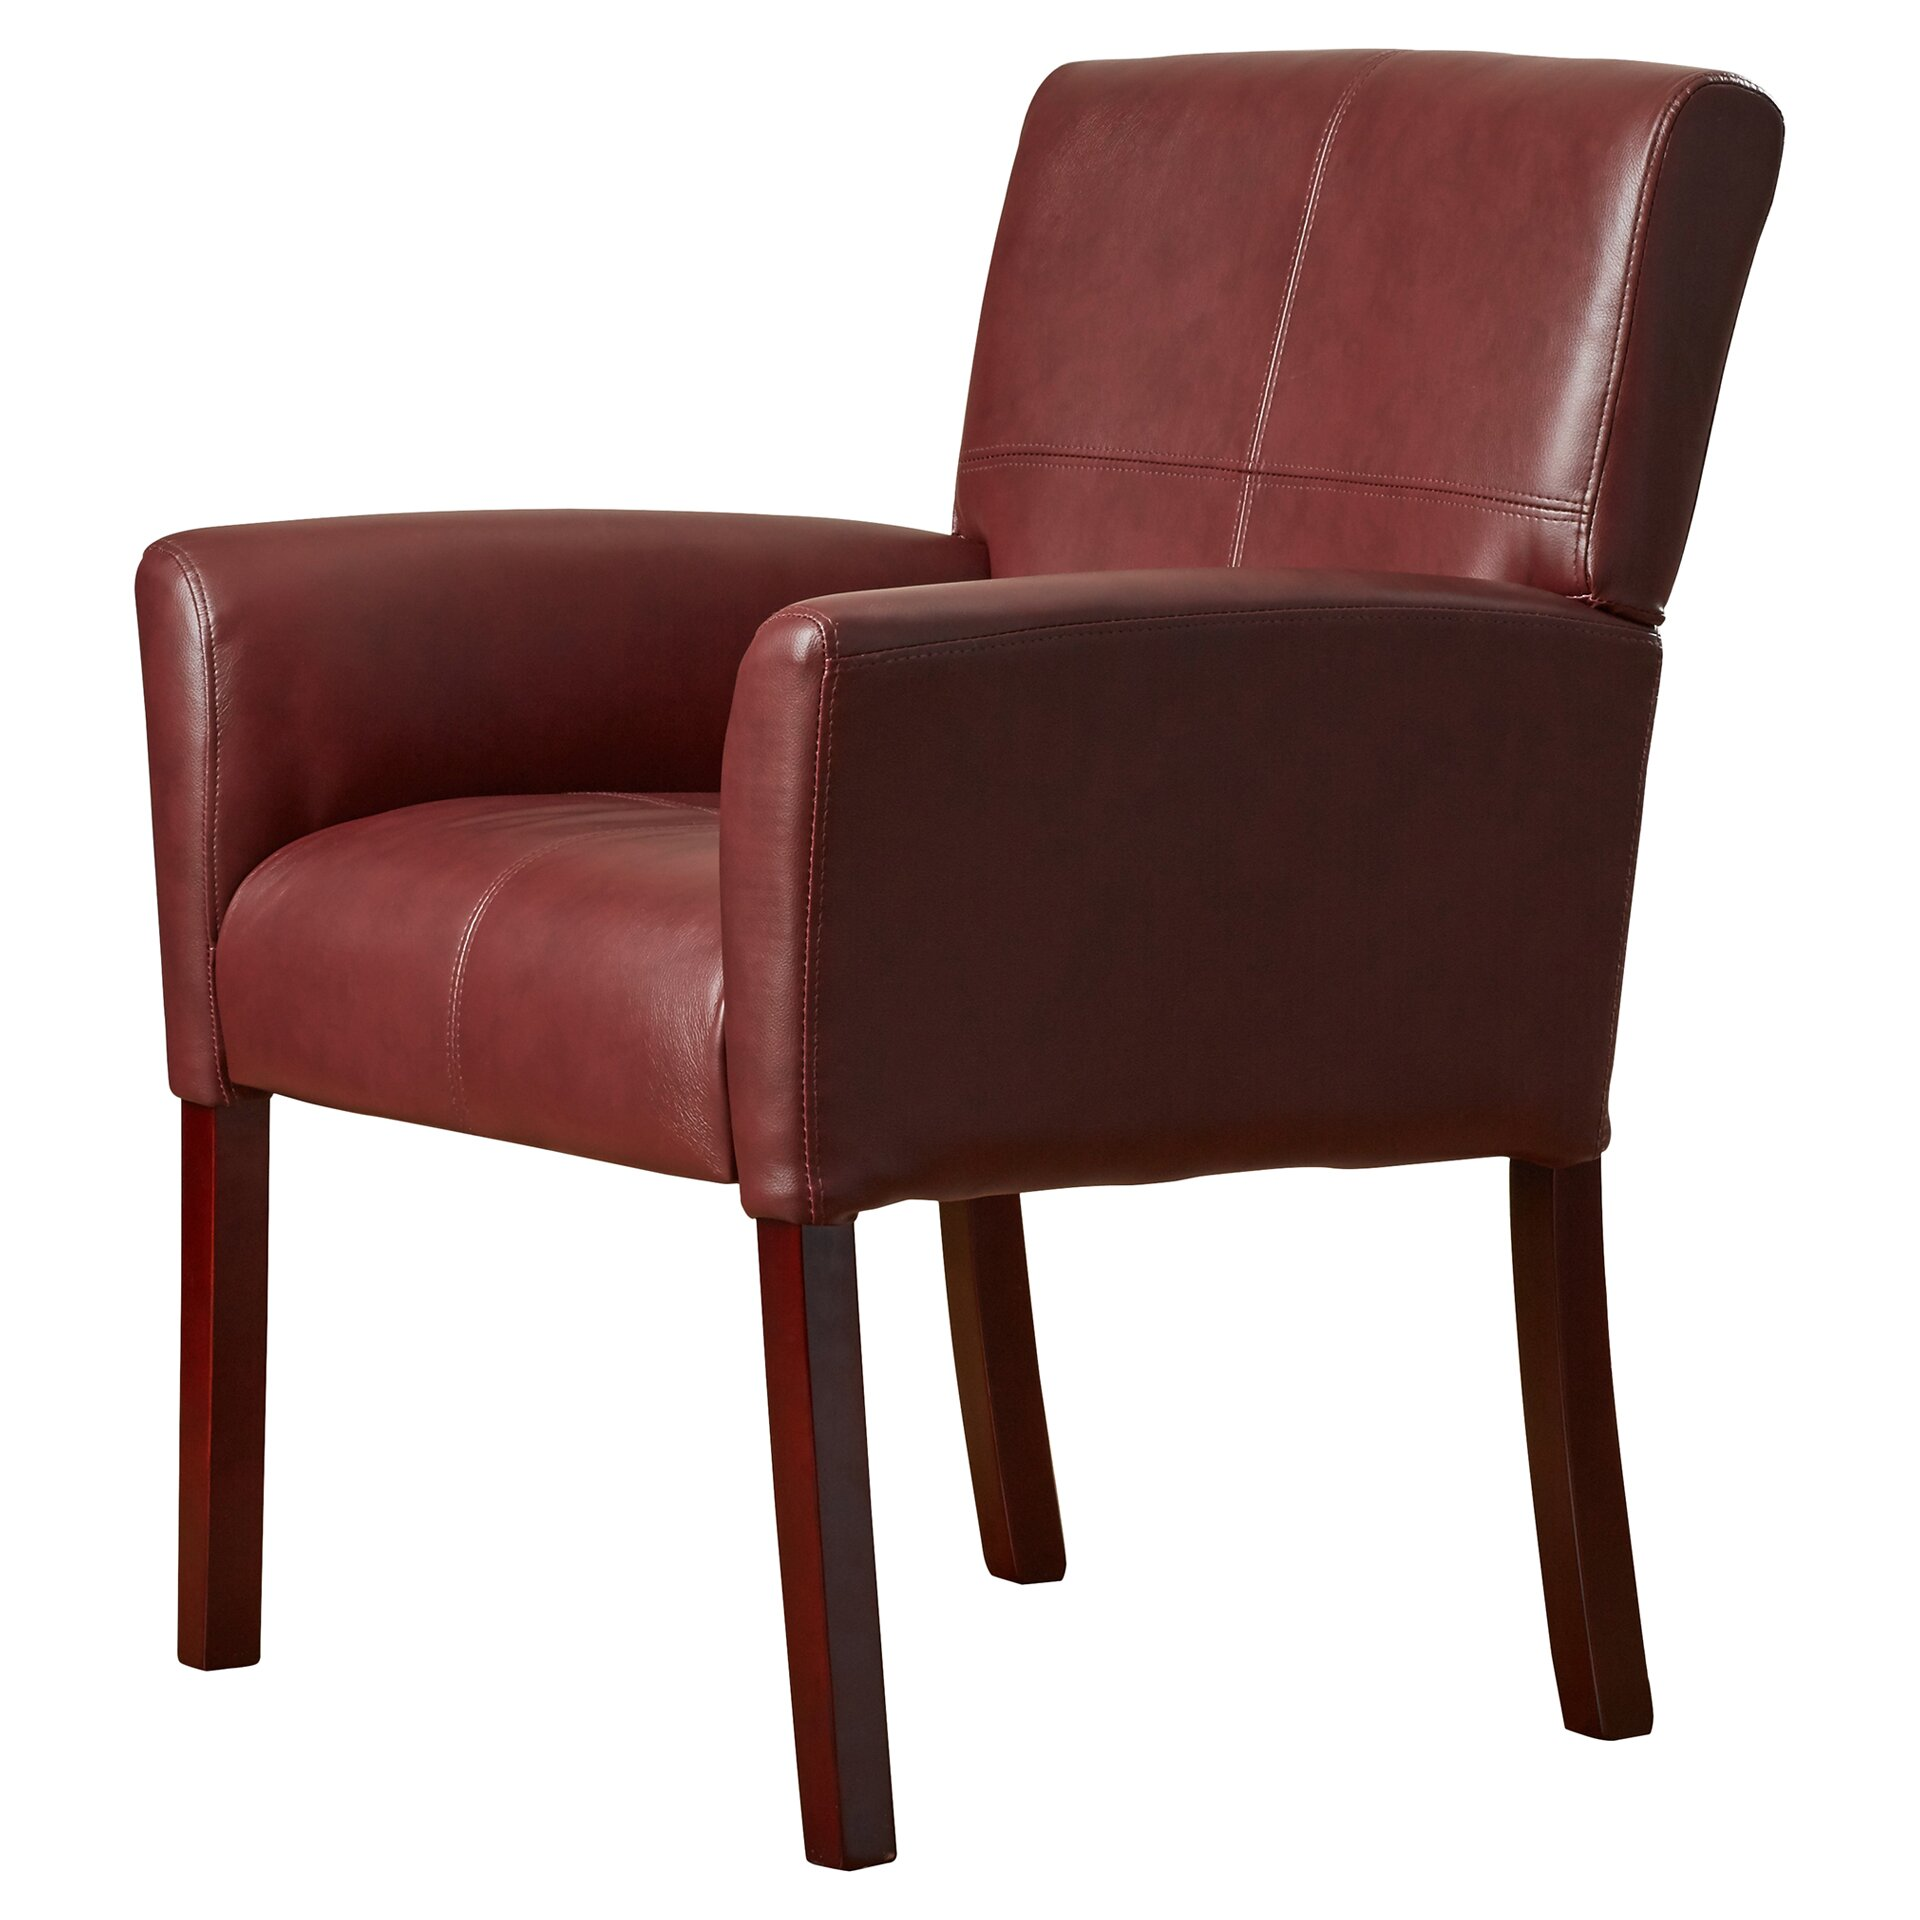 Varick Gallery Milliken Leather Executive Lounge Chair & Reviews